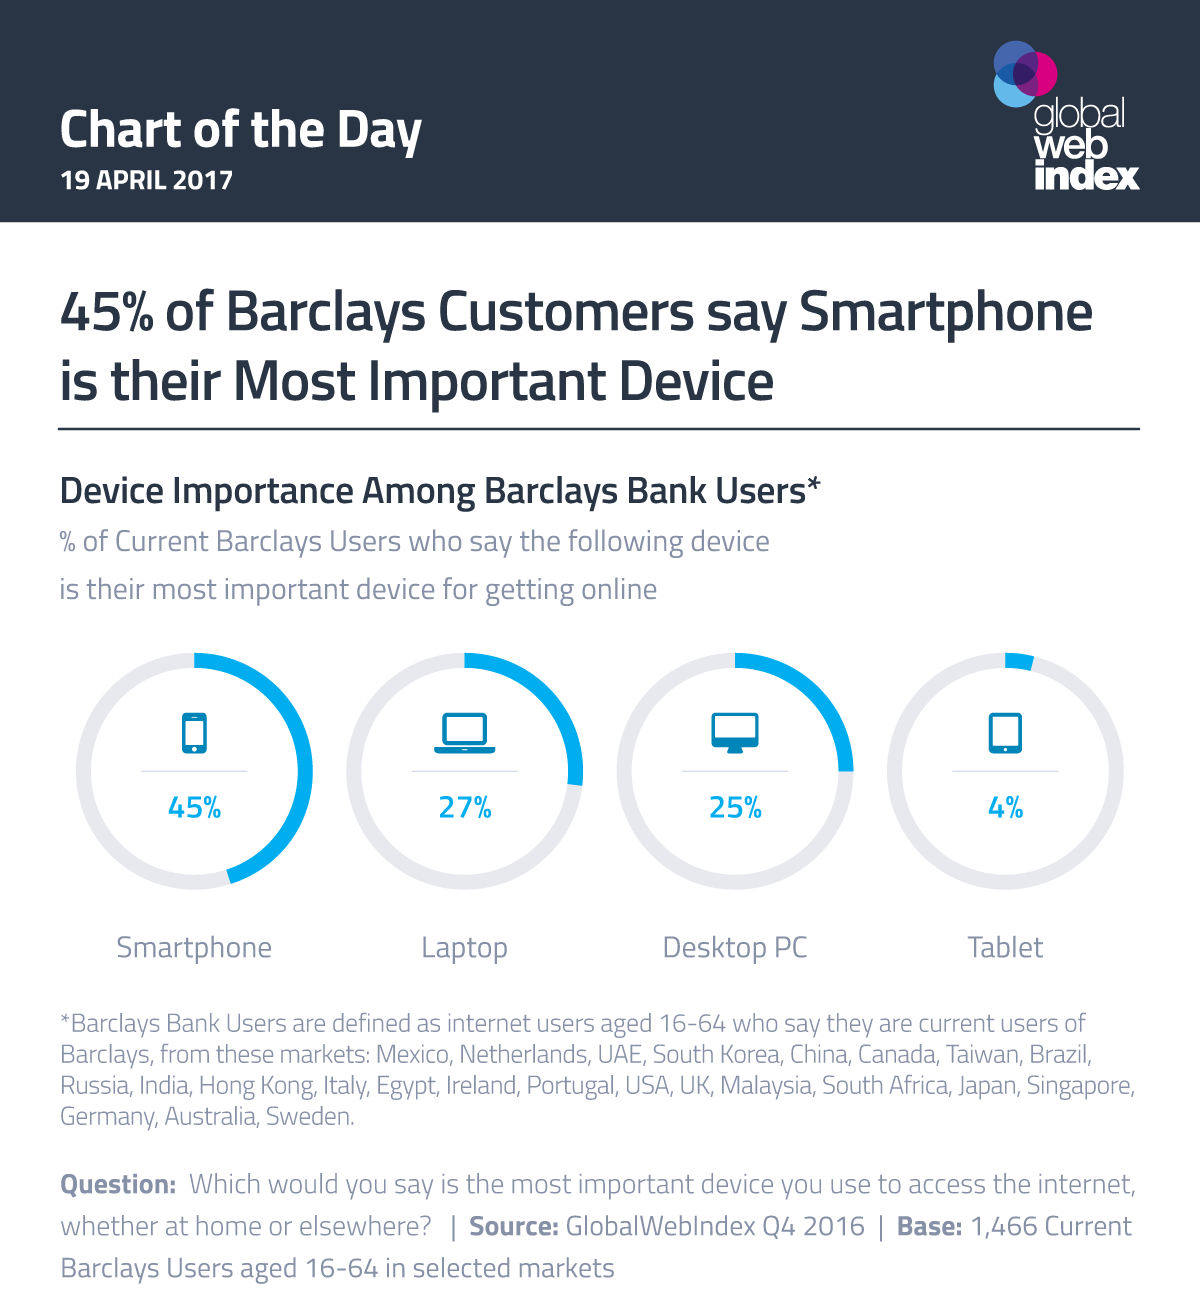 45% of Barclays Customers say Smartphone is their Most Important Device